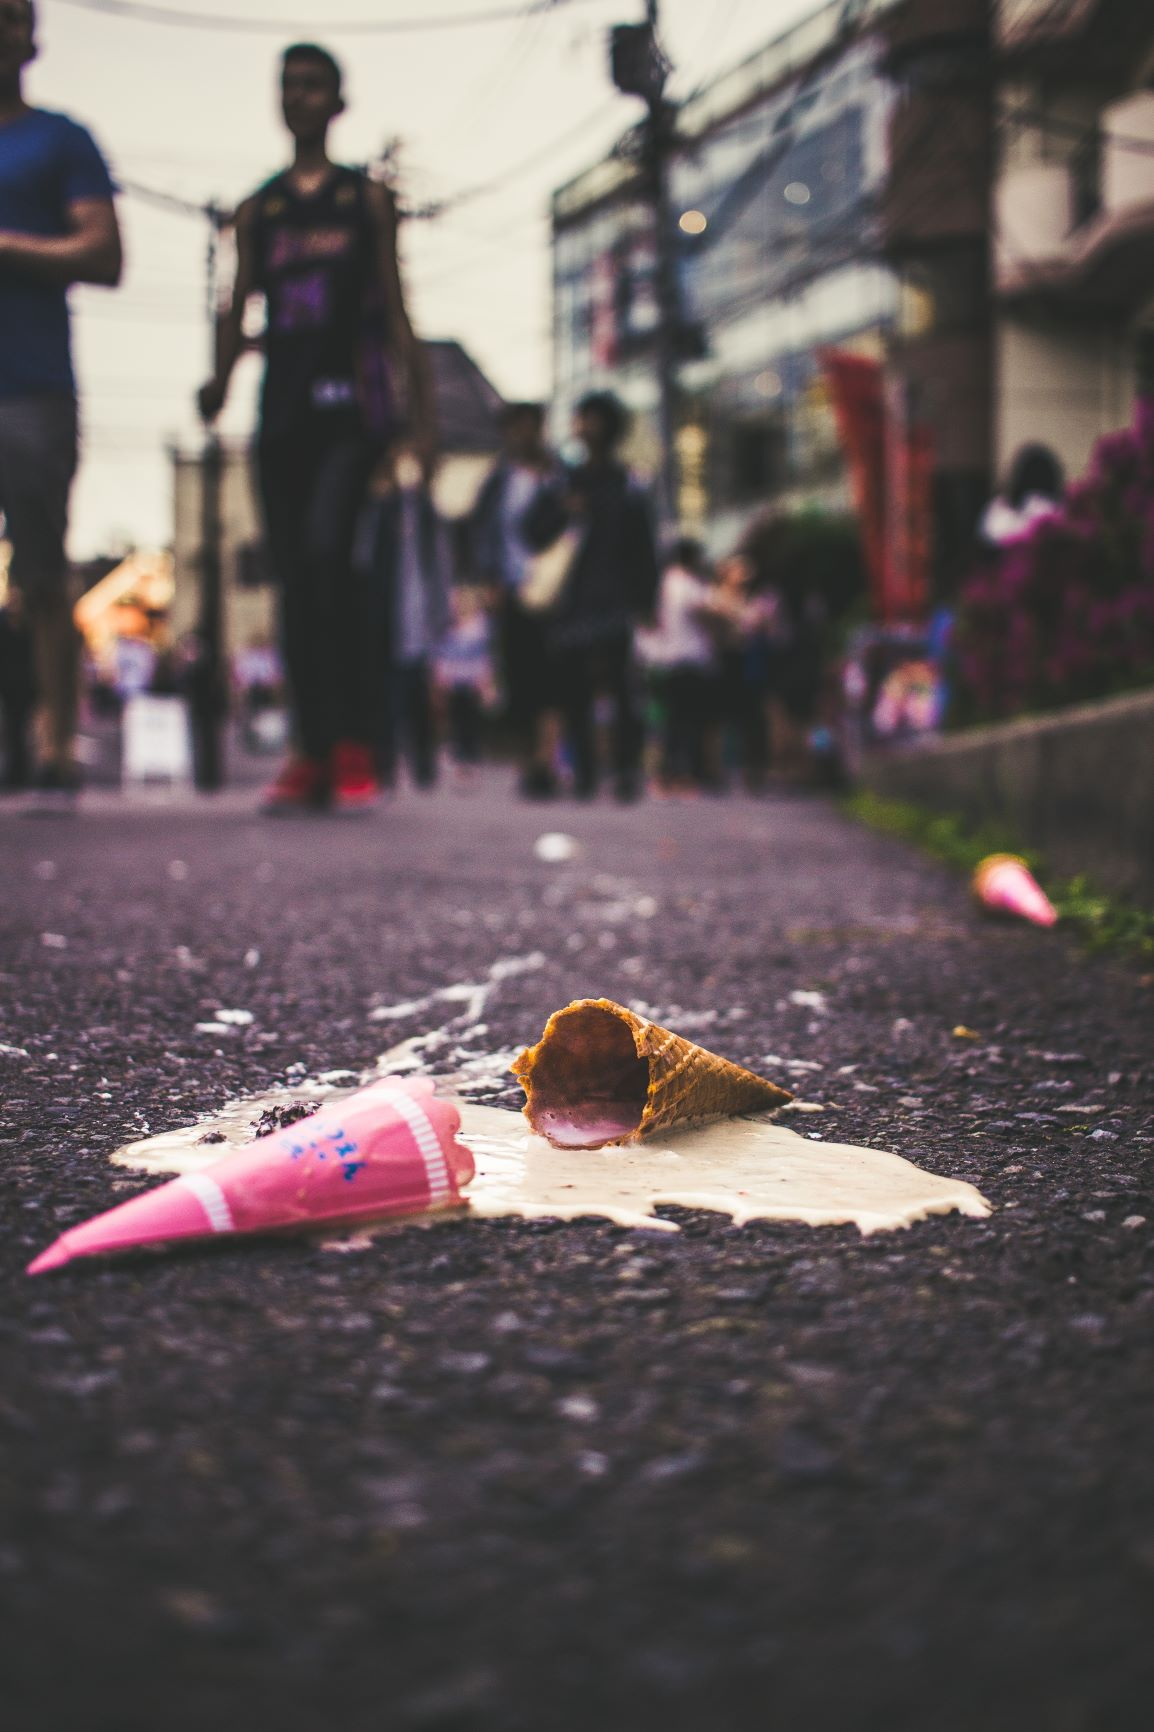 Icecream cone dropped on the ground and melted